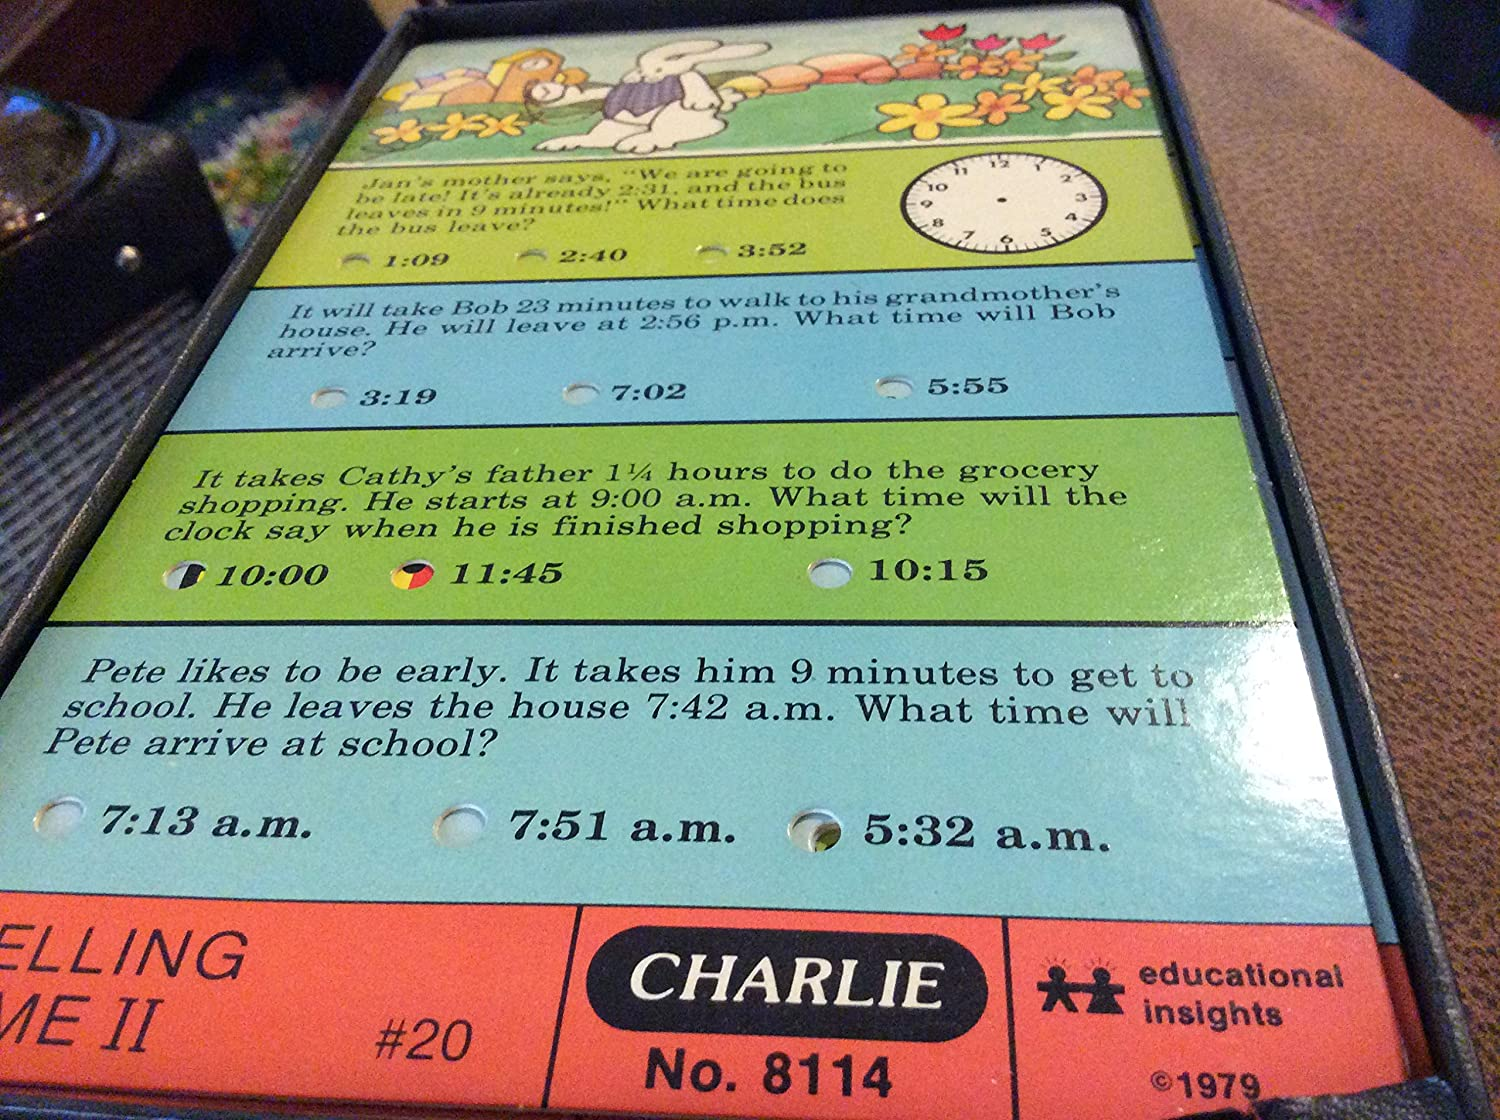 Charlie the Lovable Teaching Robot Telling Time II Punchcards